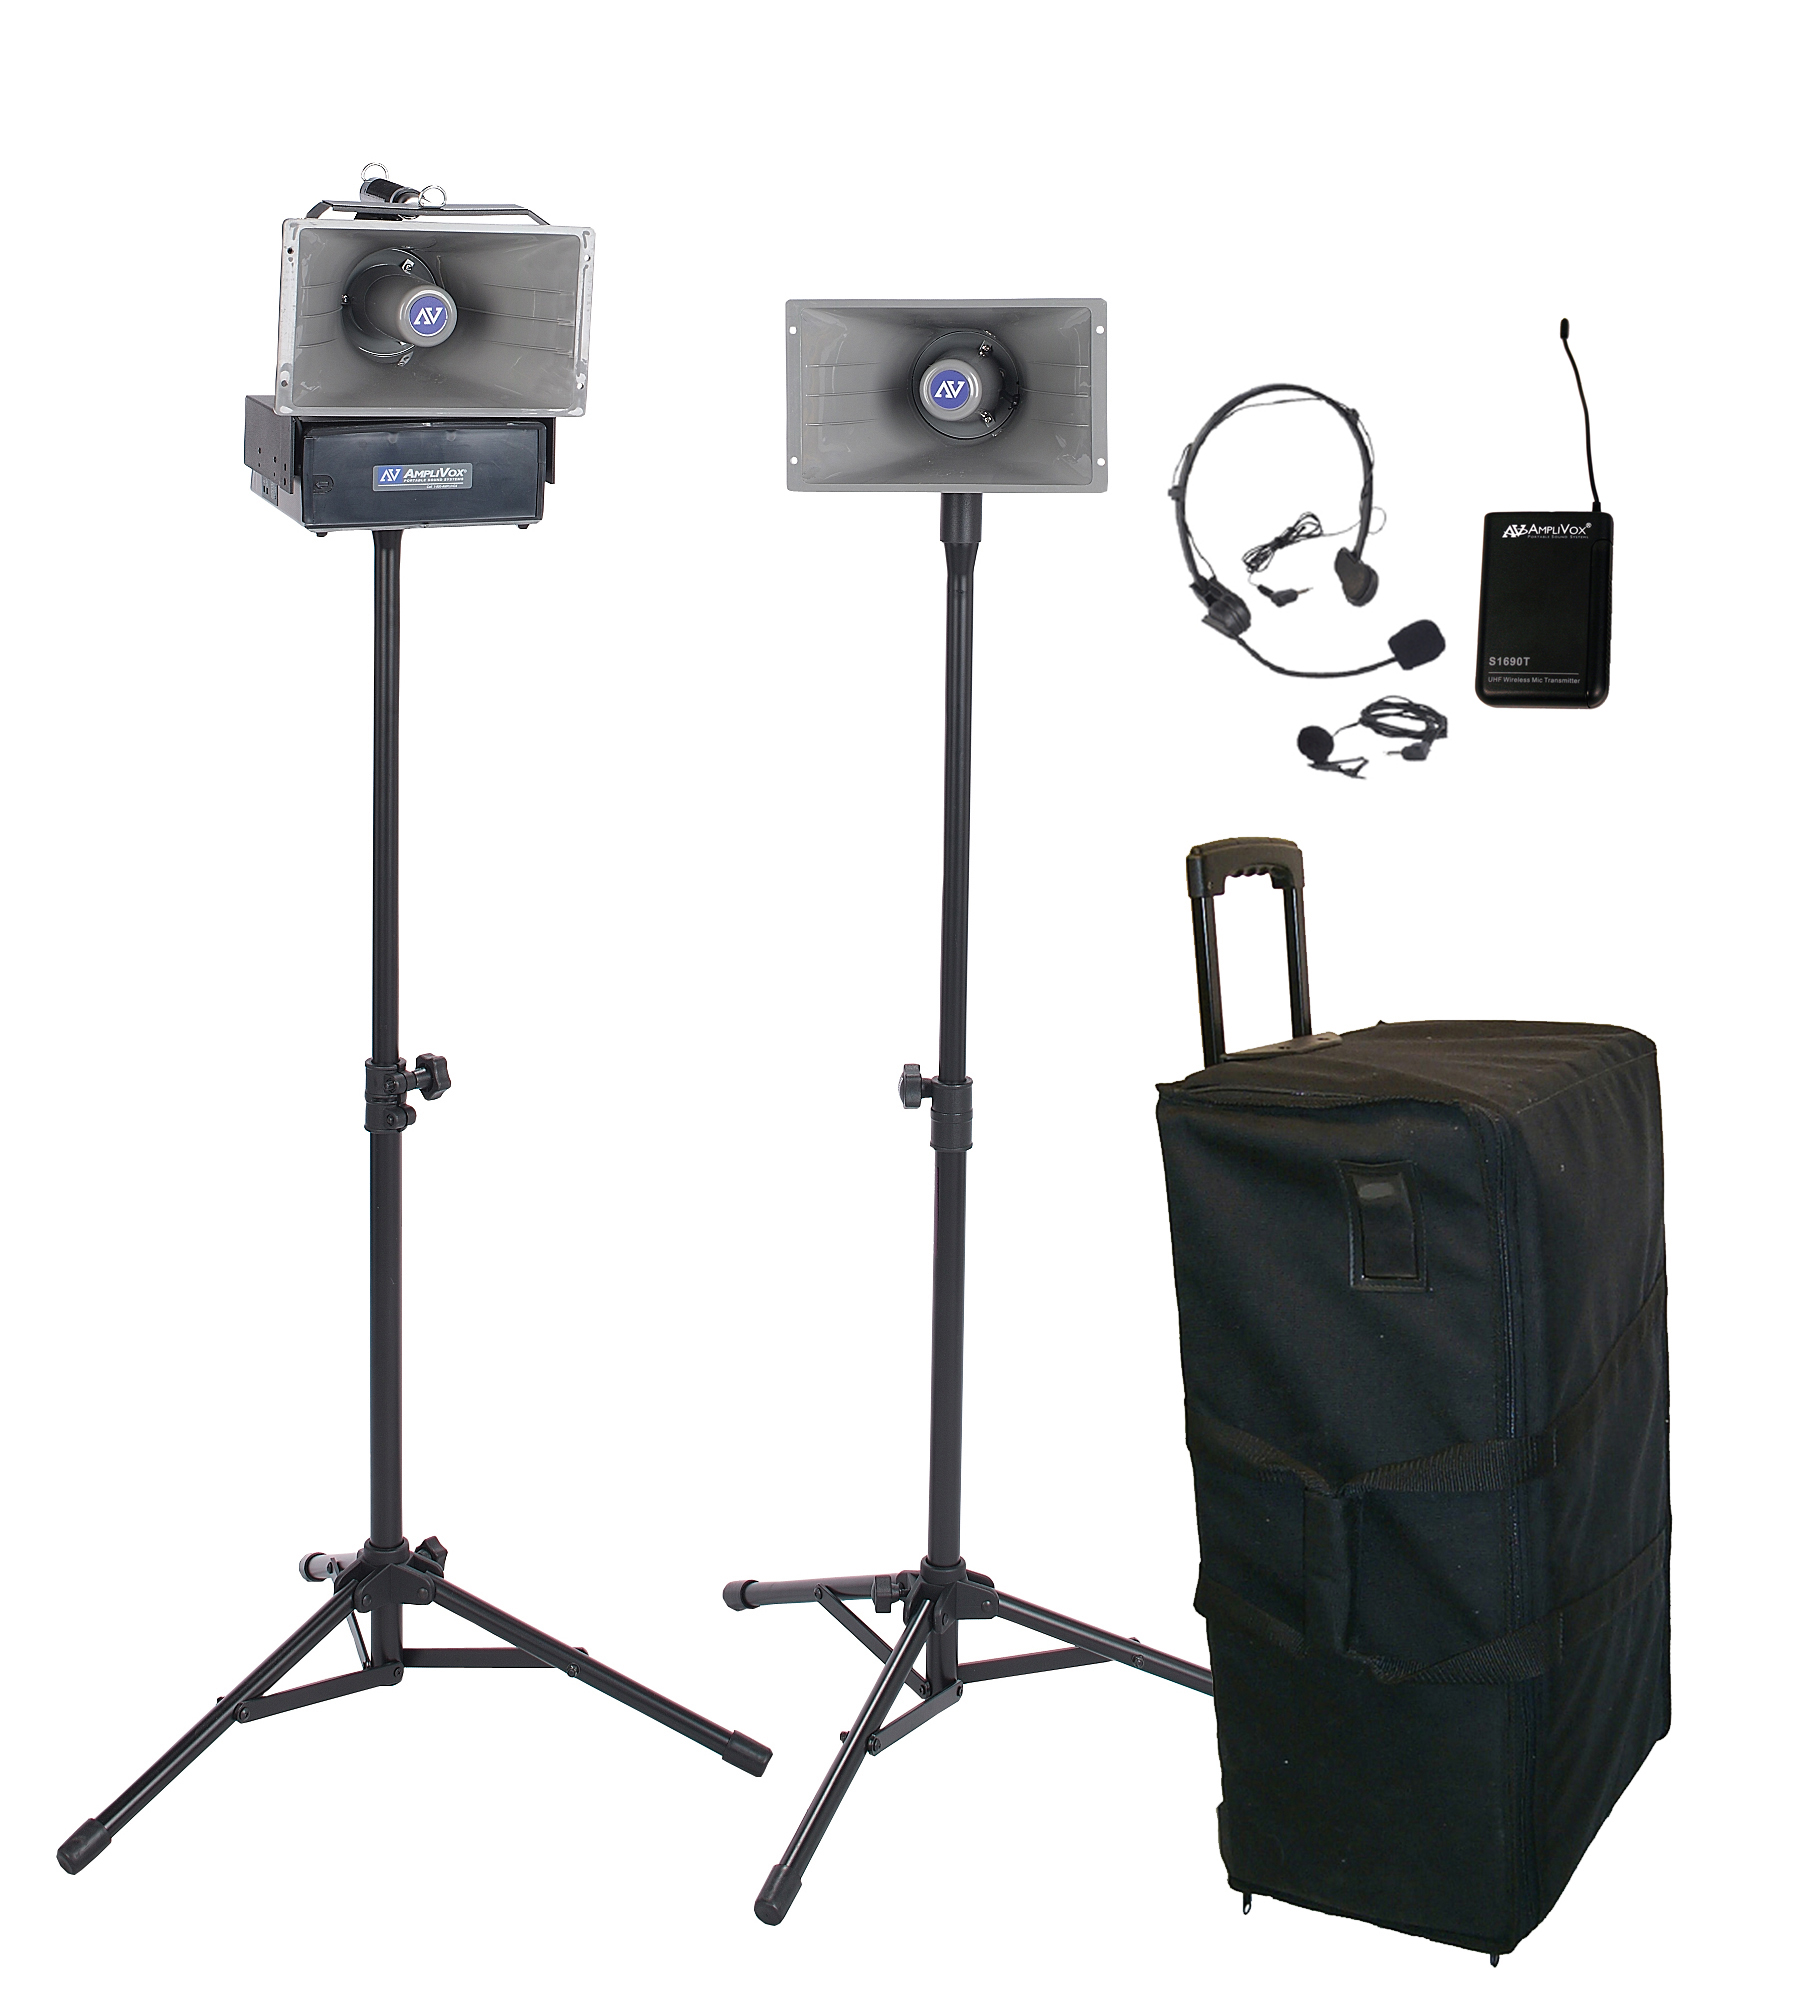 AmpliVox SW630 Half-Mile Hailer Portable Wireless PA System Kit